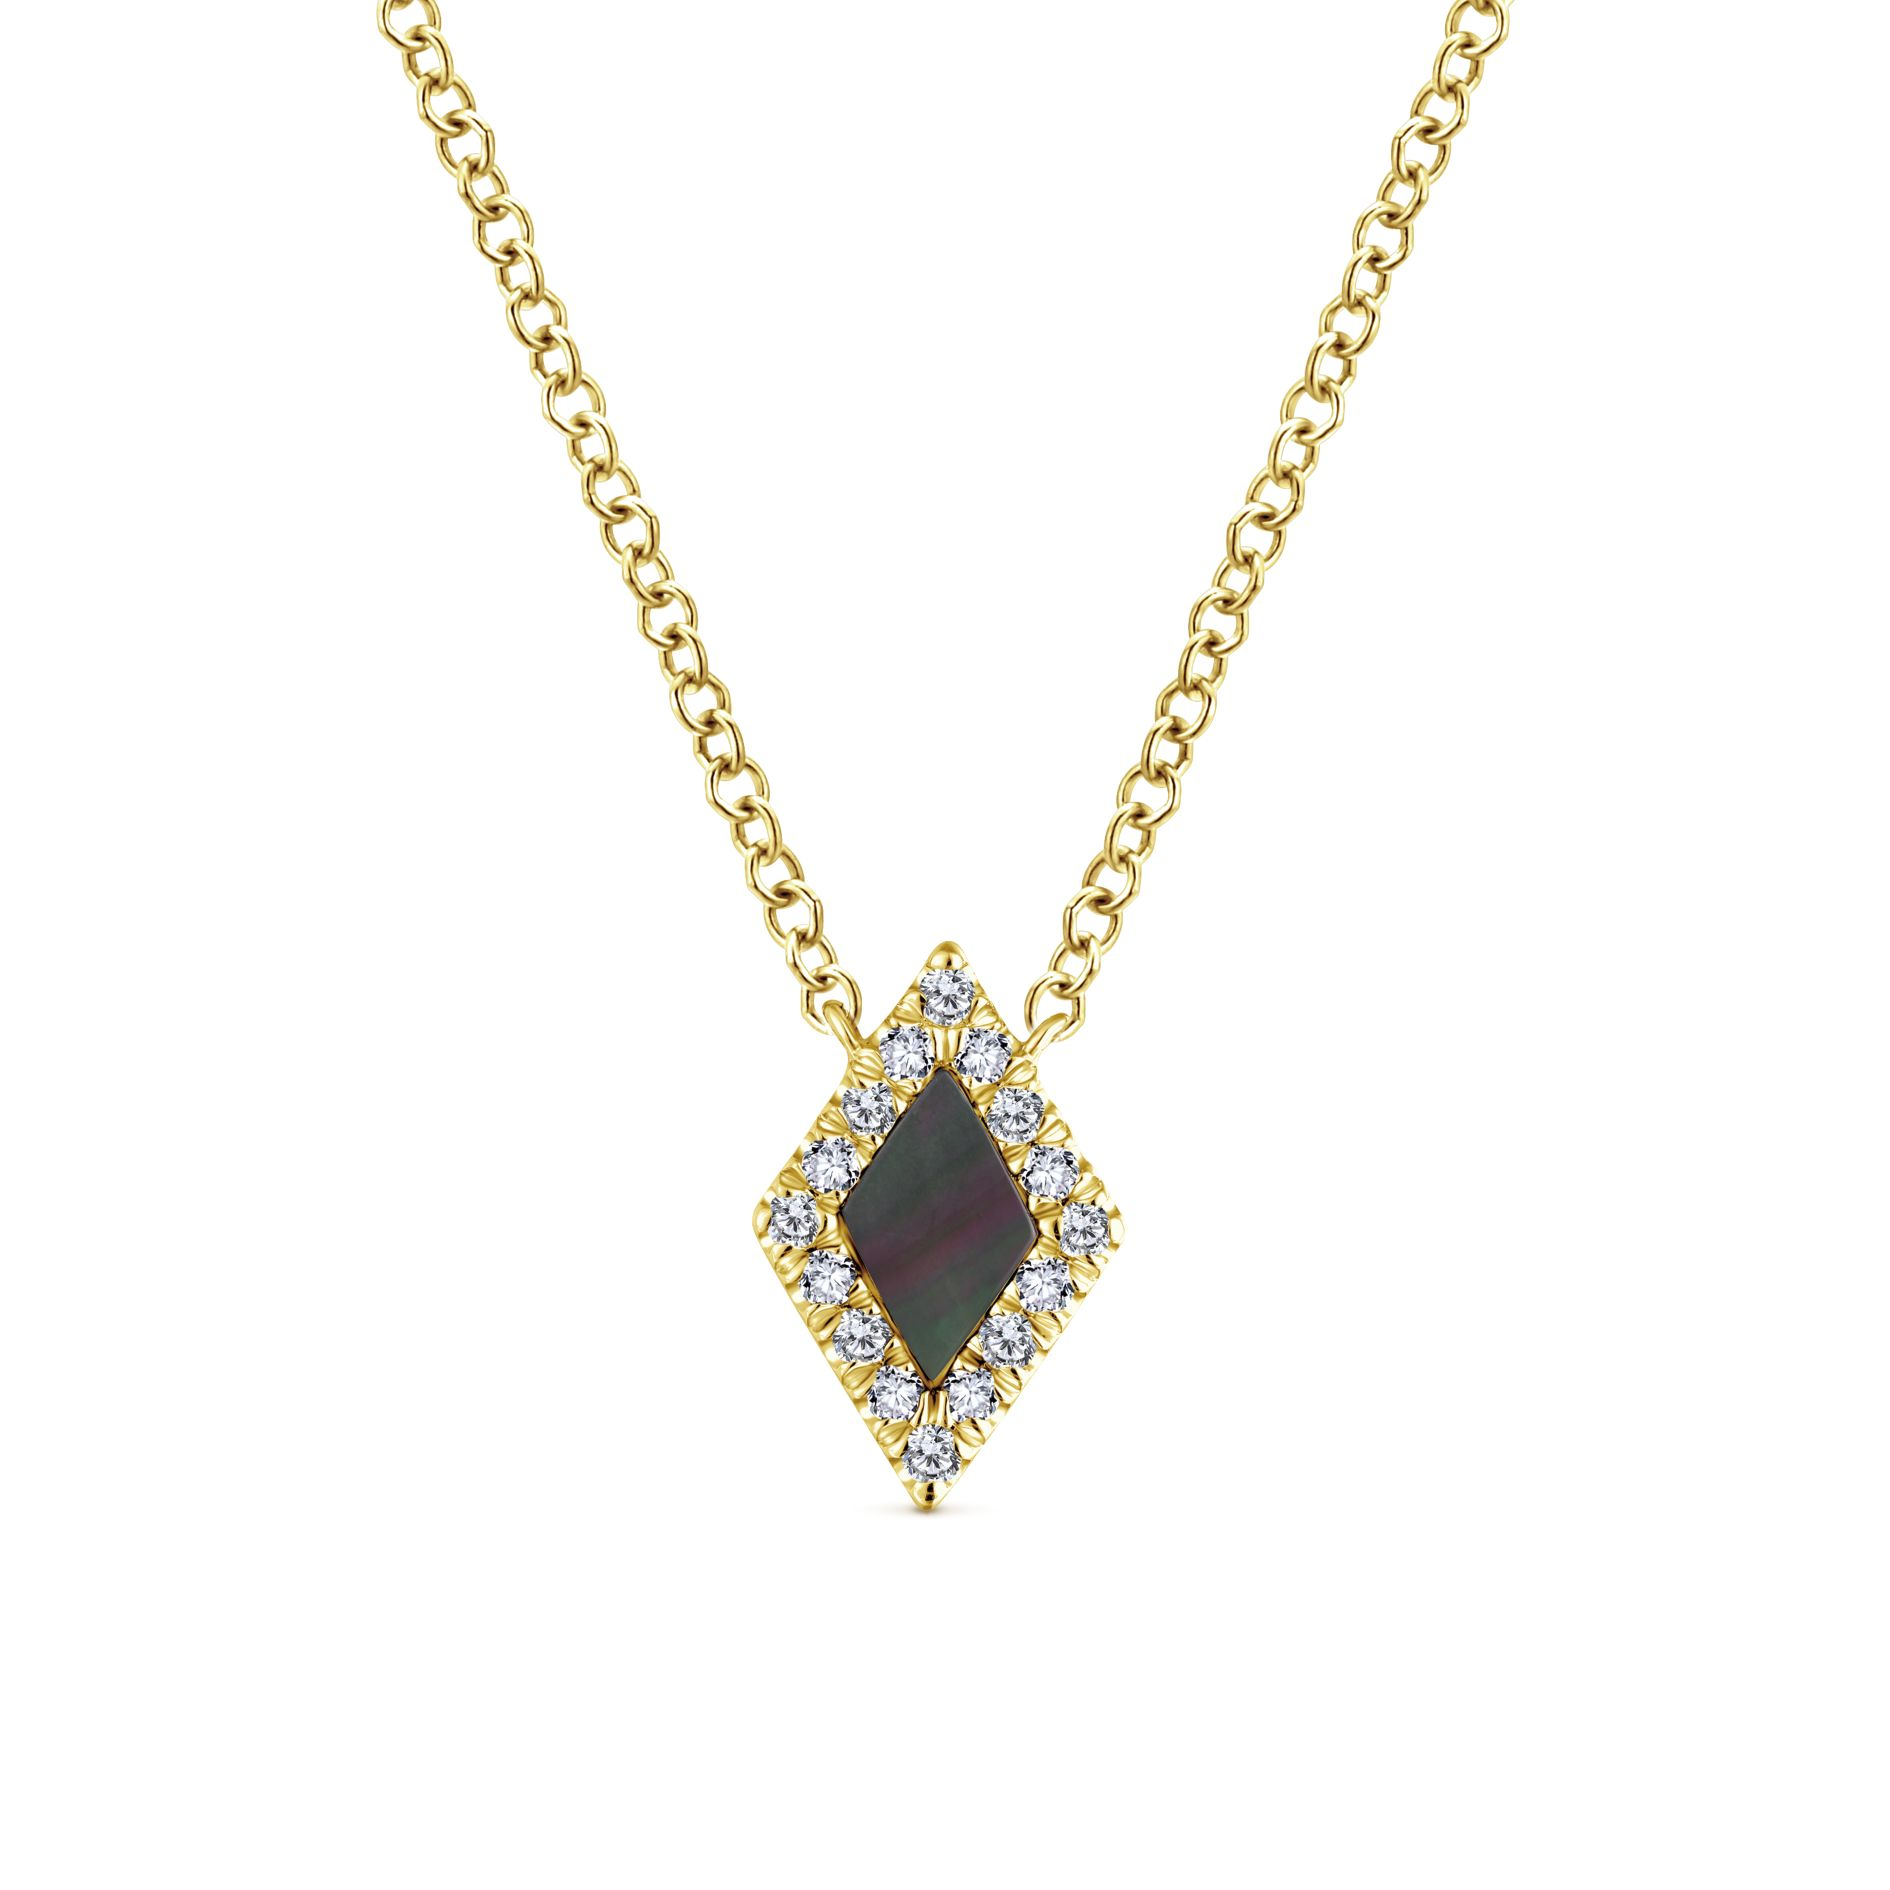 Necklaces - YELLOW GOLD FASHION DIAMOND BLACK MOTHER OF PEARL NECKLACE